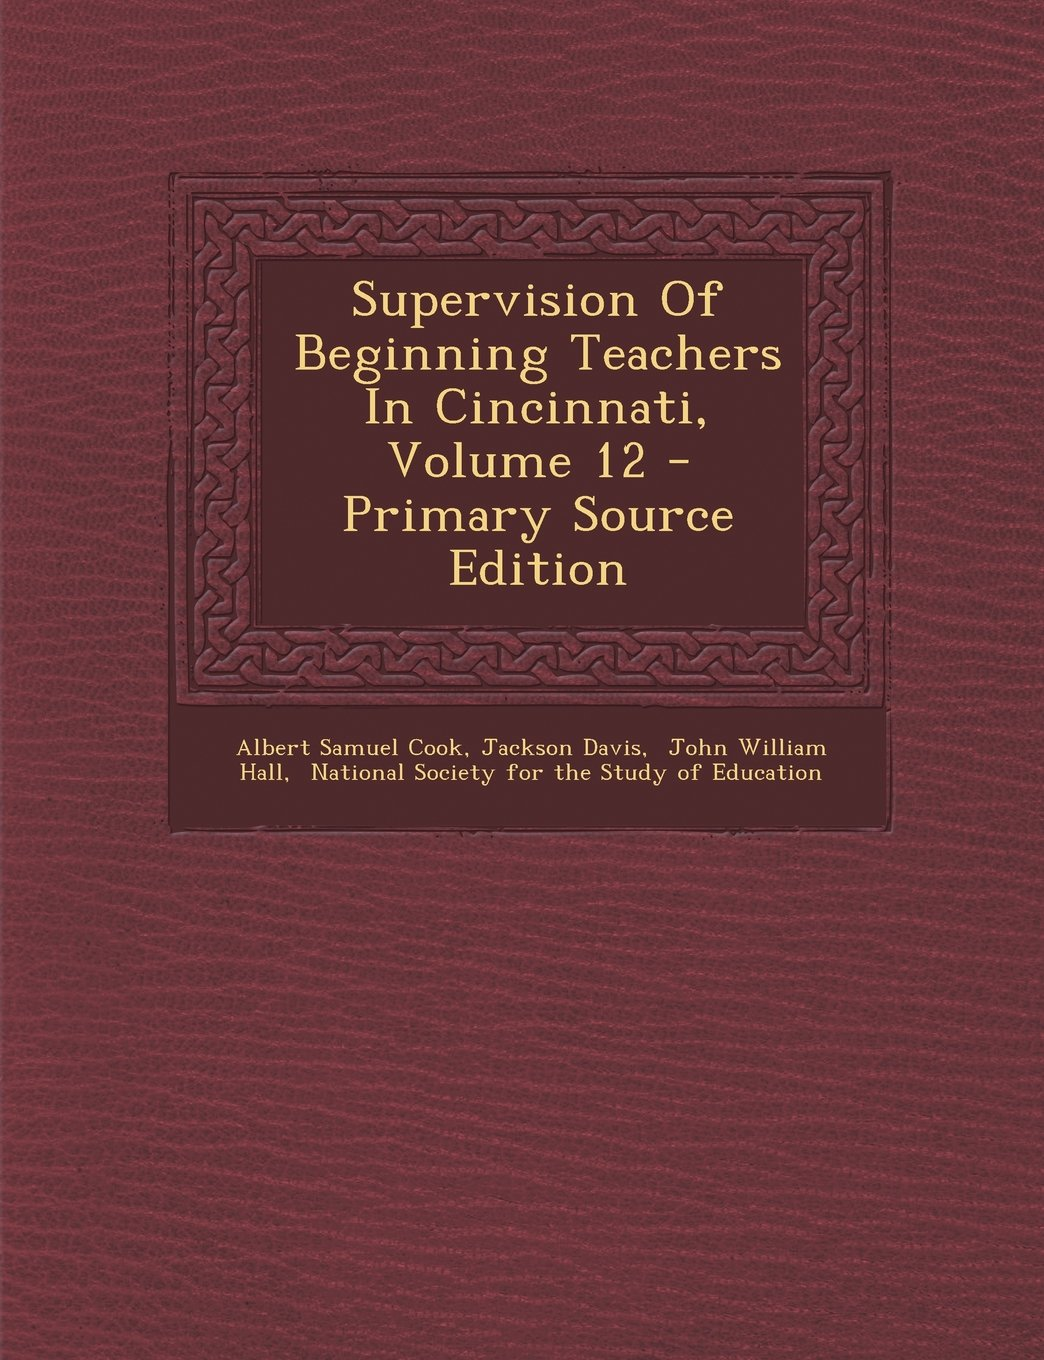 Supervision Of Beginning Teachers In Cincinnati, Volume 12 - Primary Source Edition pdf